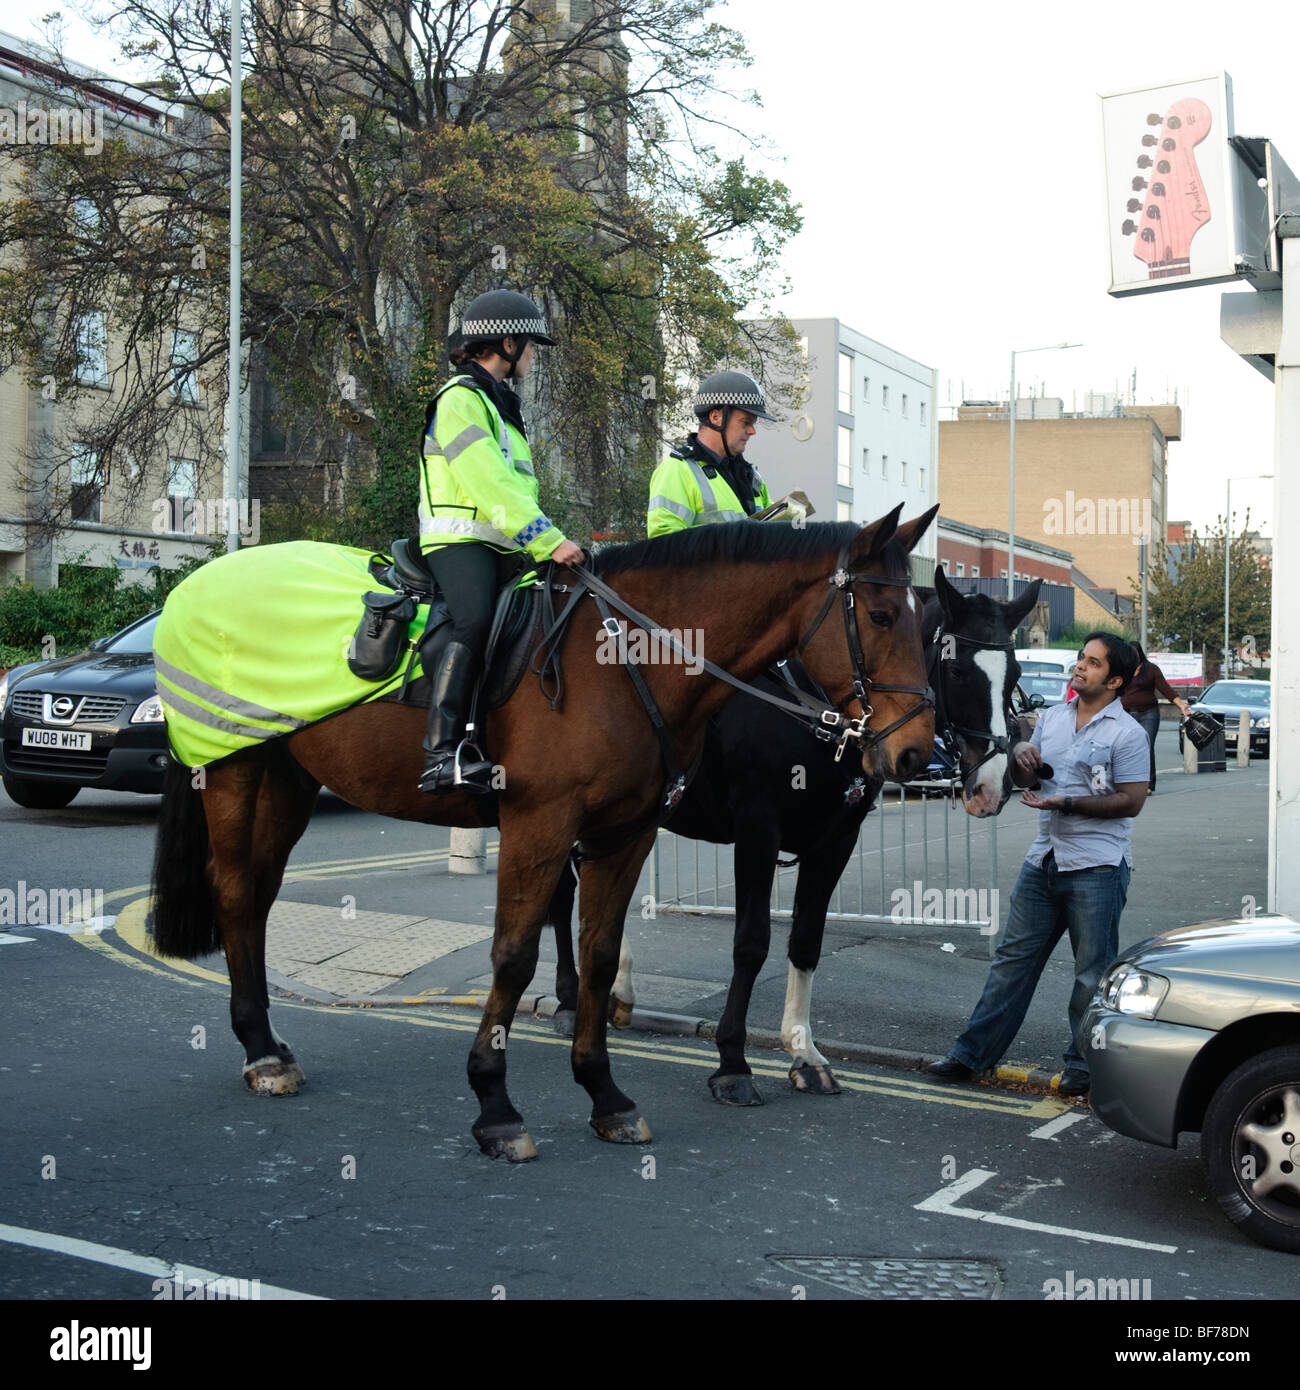 Two mounted police officers cops on horseback talking to a member of the public in Swansea city centre, Wales UK - Stock Image